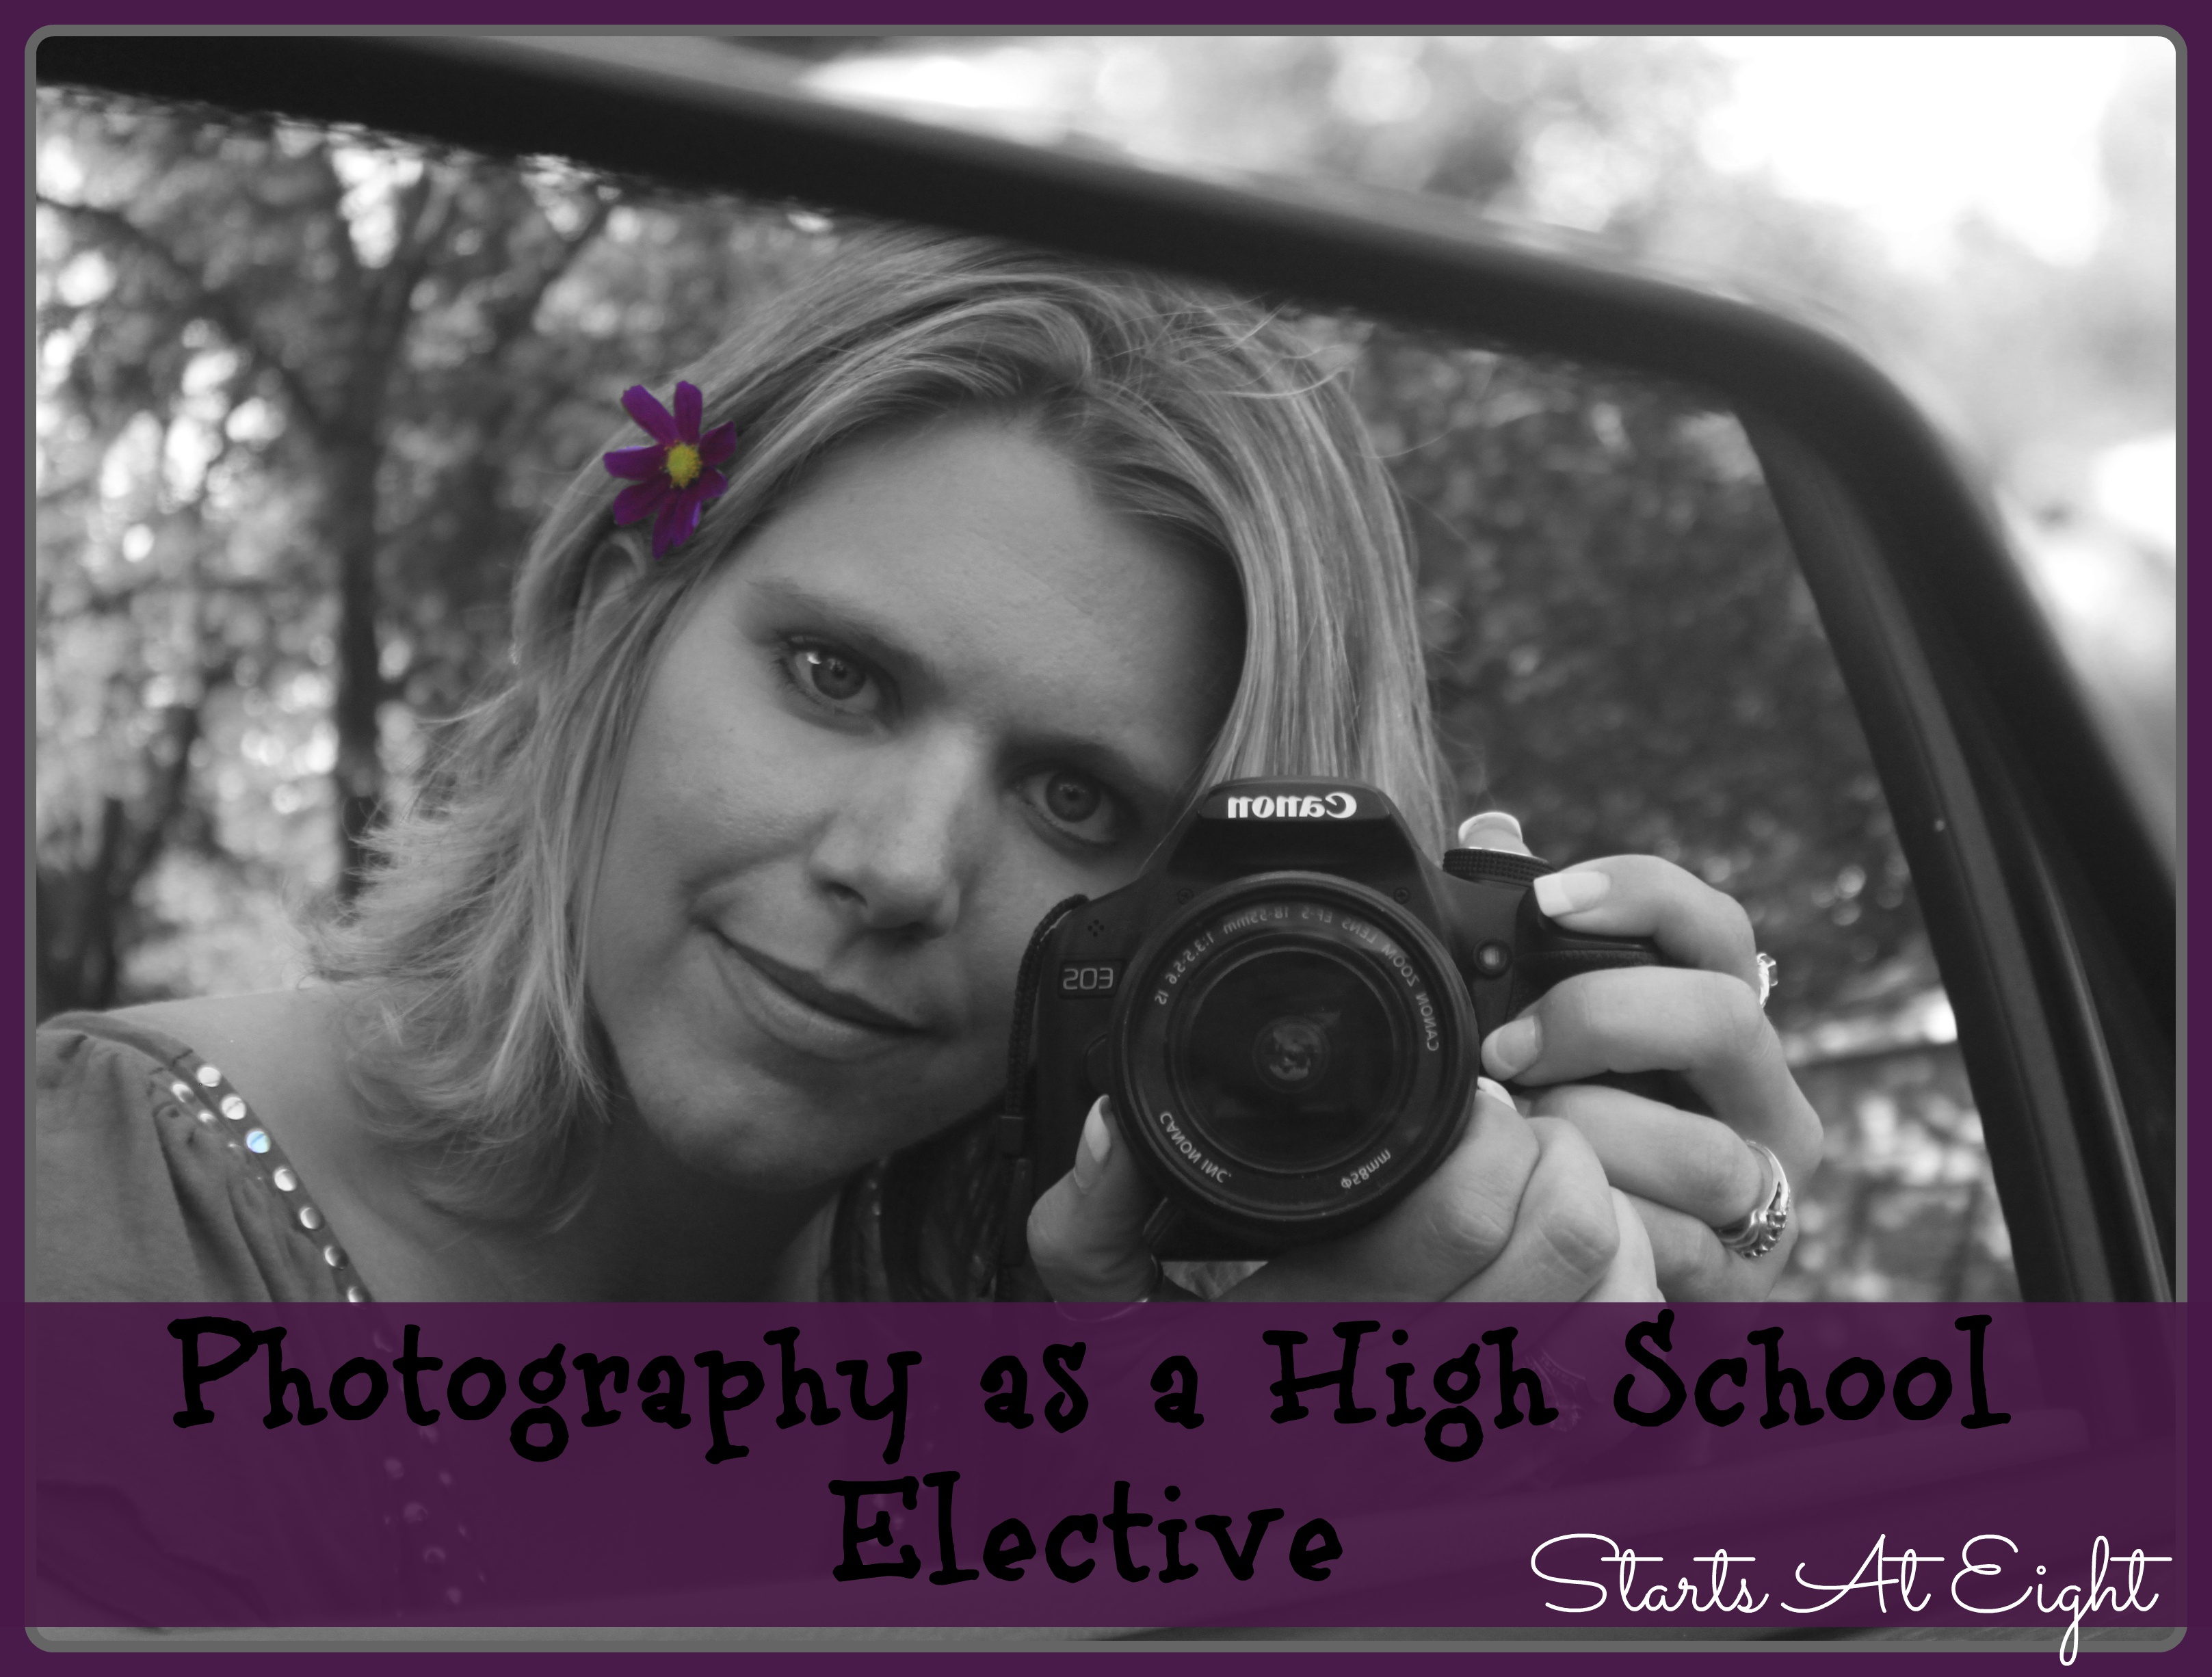 Photography as a High School Elective